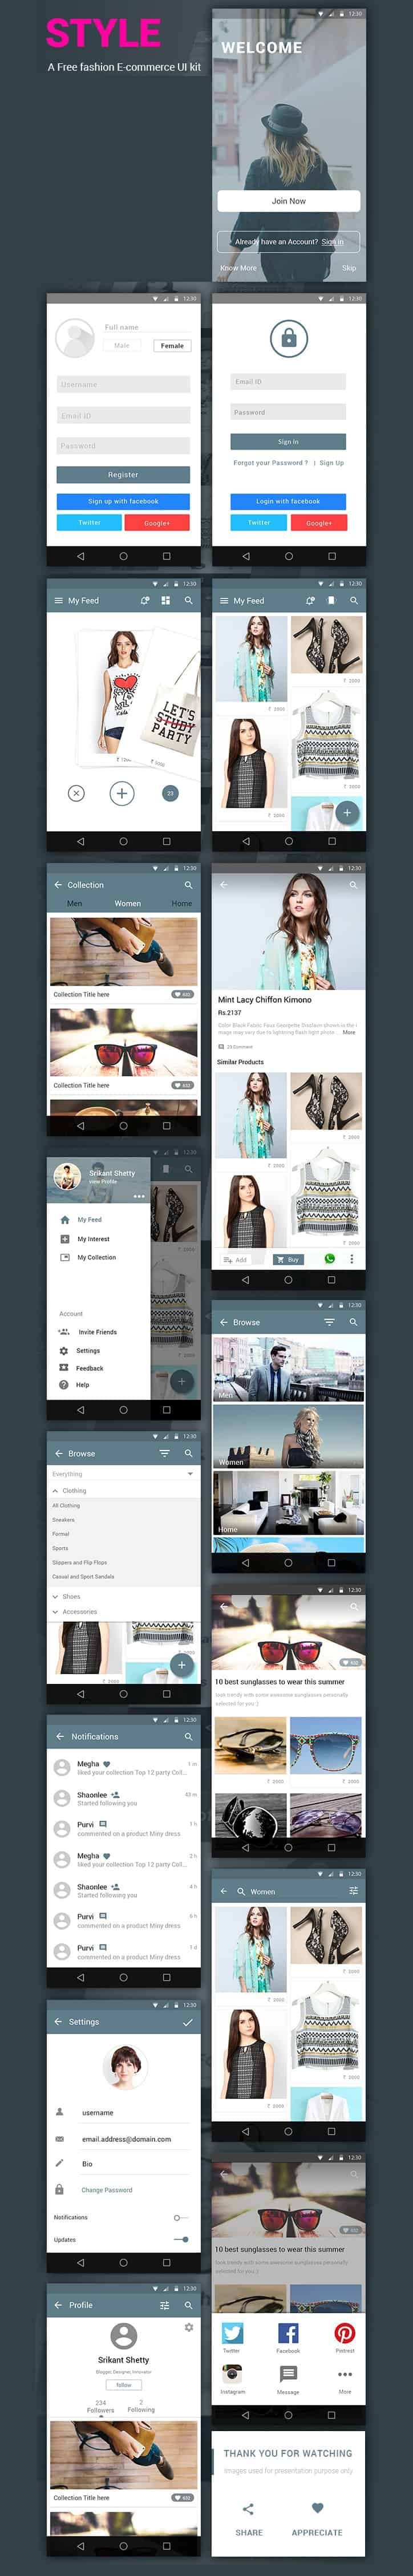 Style – Free e-commerce App UI Kit